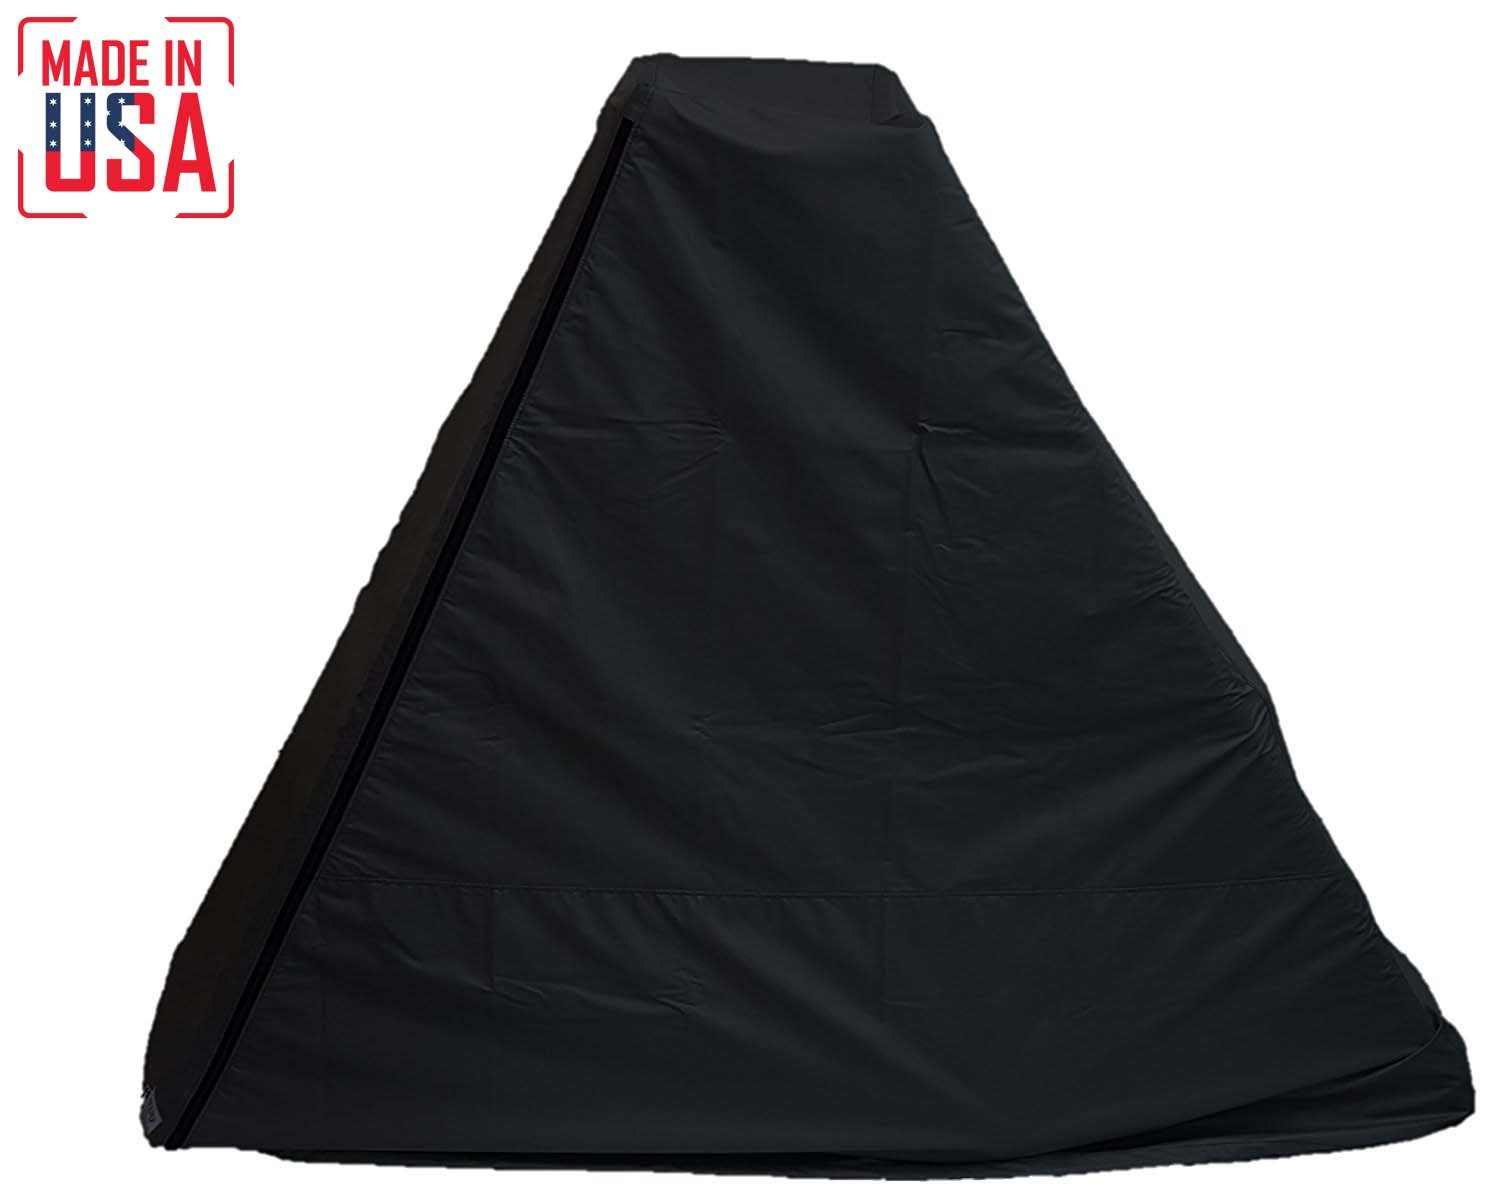 The Best Elliptical Machine Cover | Front Drive. Heavy Duty Fitness Equipment Protective Covers Ideal for Indoor or Outdoor Use. Made in USA with 3-Year Warranty. (Black, Medium)